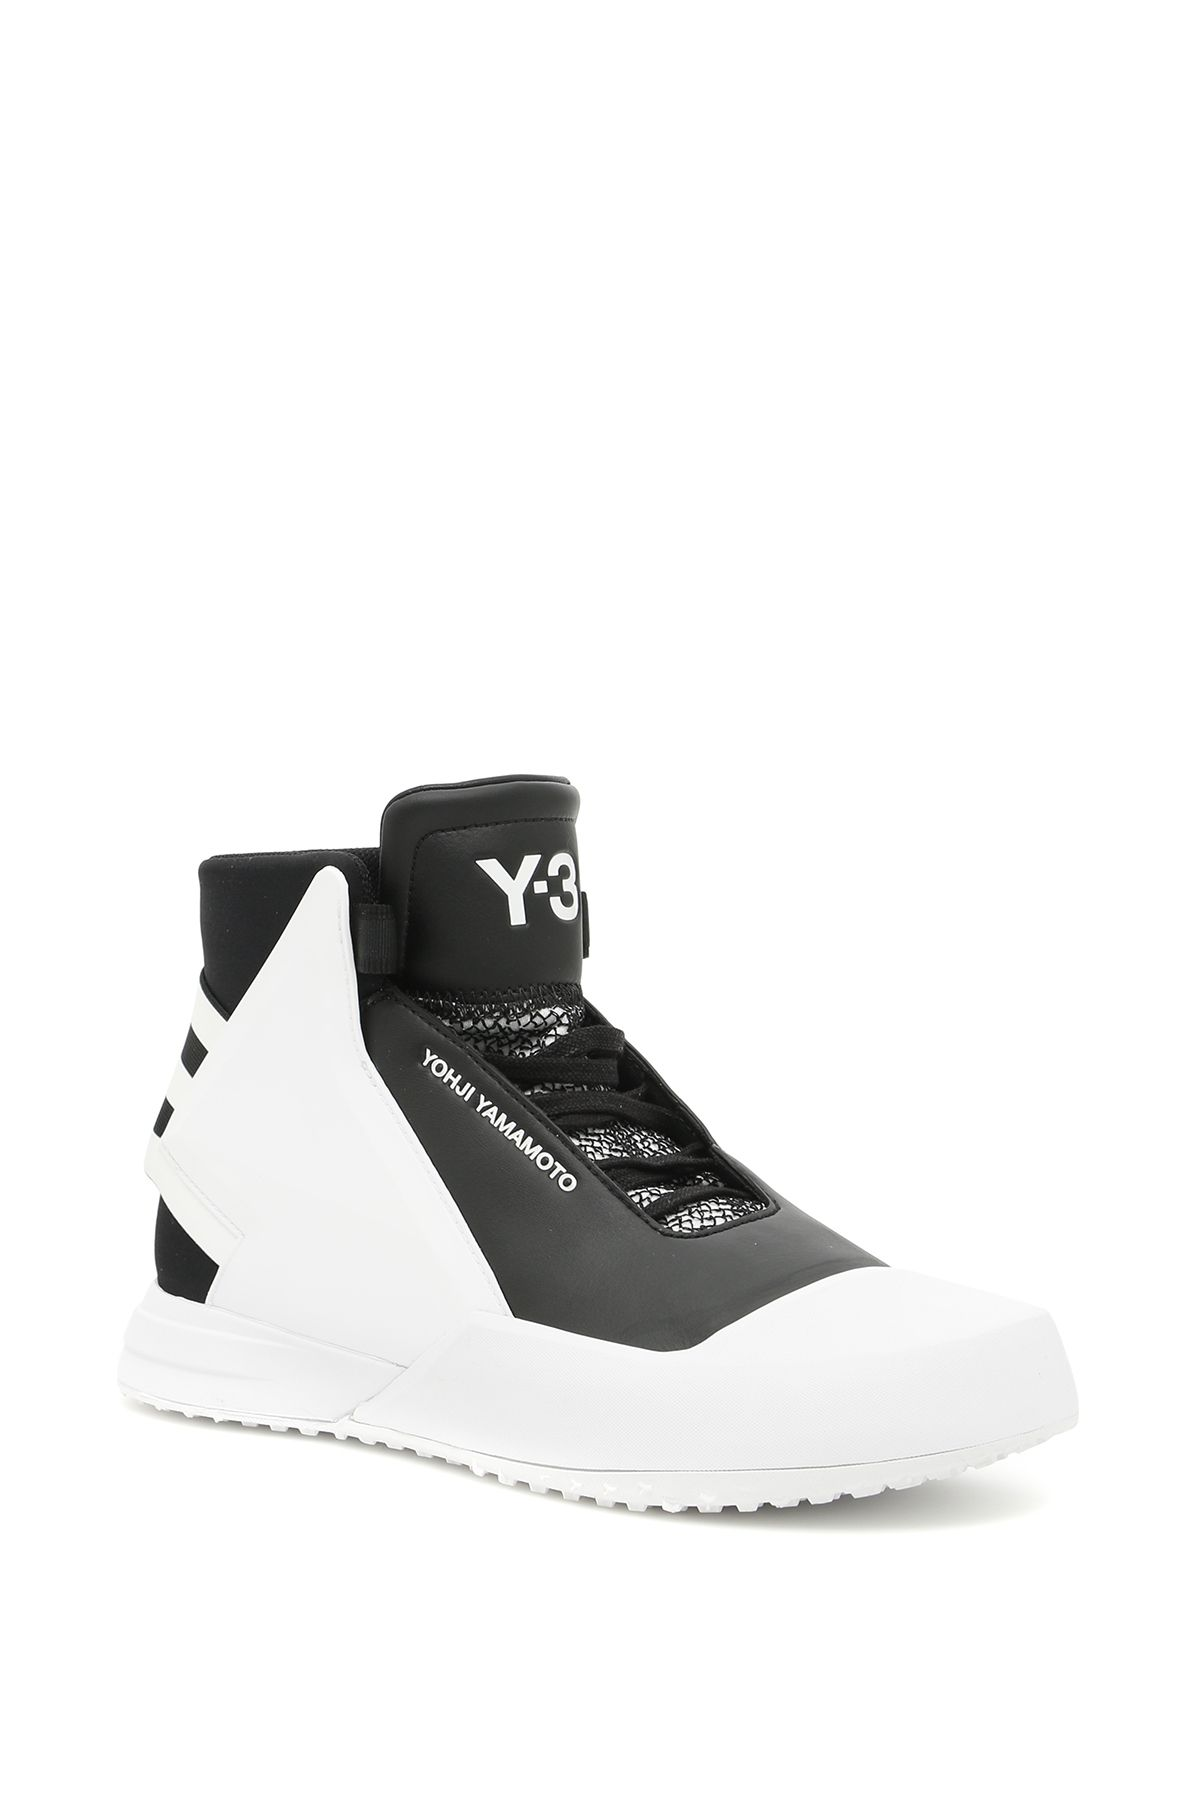 a97f8603e4 Y-3 BBBALL TECH SNEAKERS. #y-3 #shoes | Y-3 | Sneakers, High Top ...